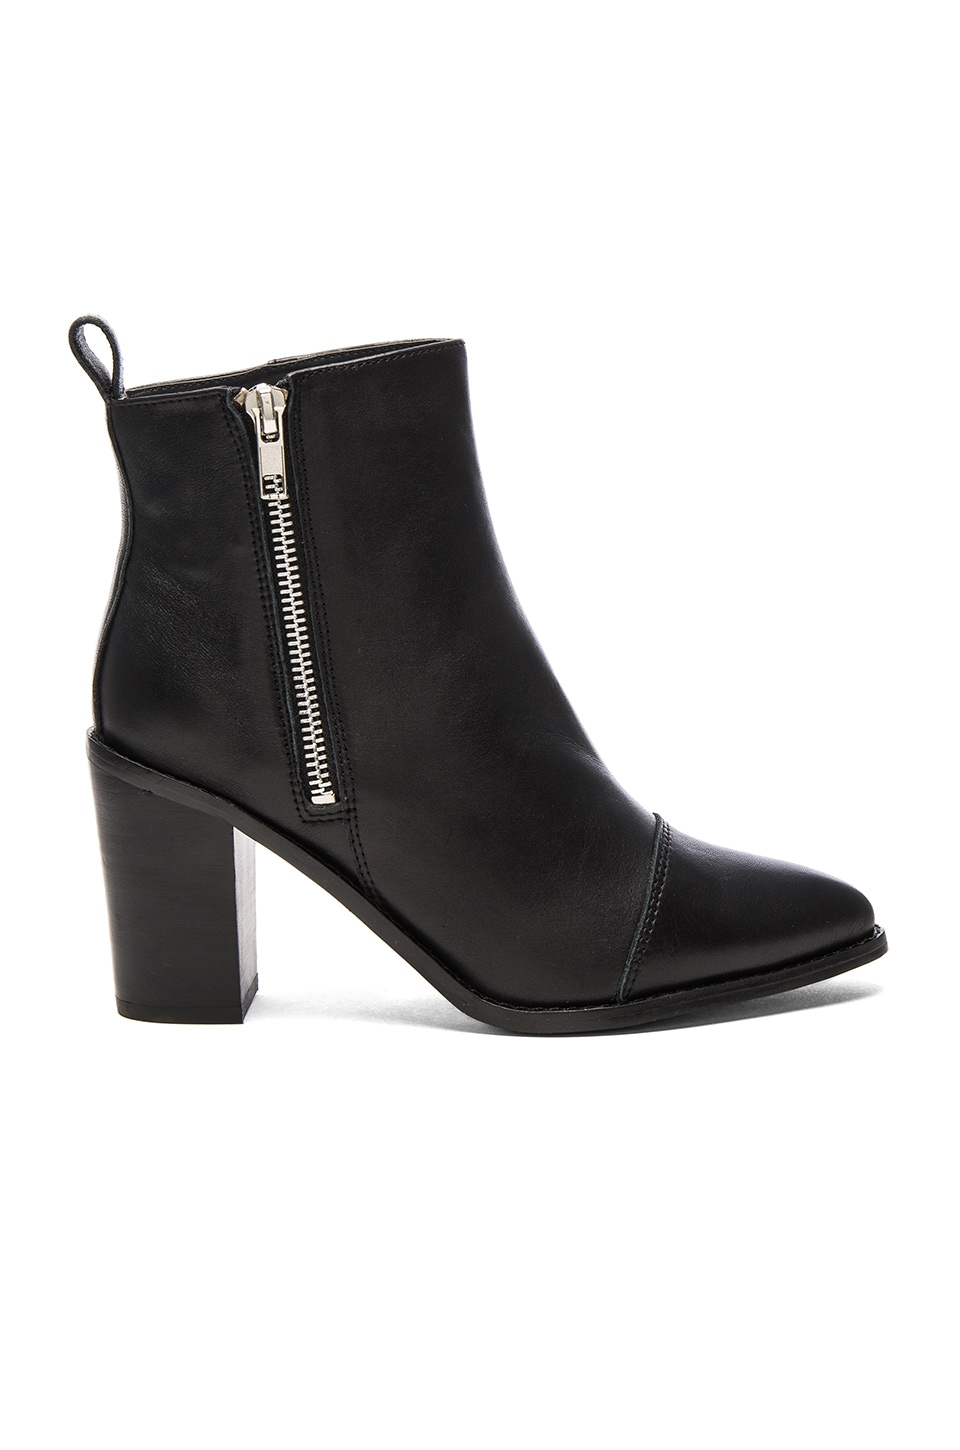 Tony Bianco Bentley Bootie in Black Modena